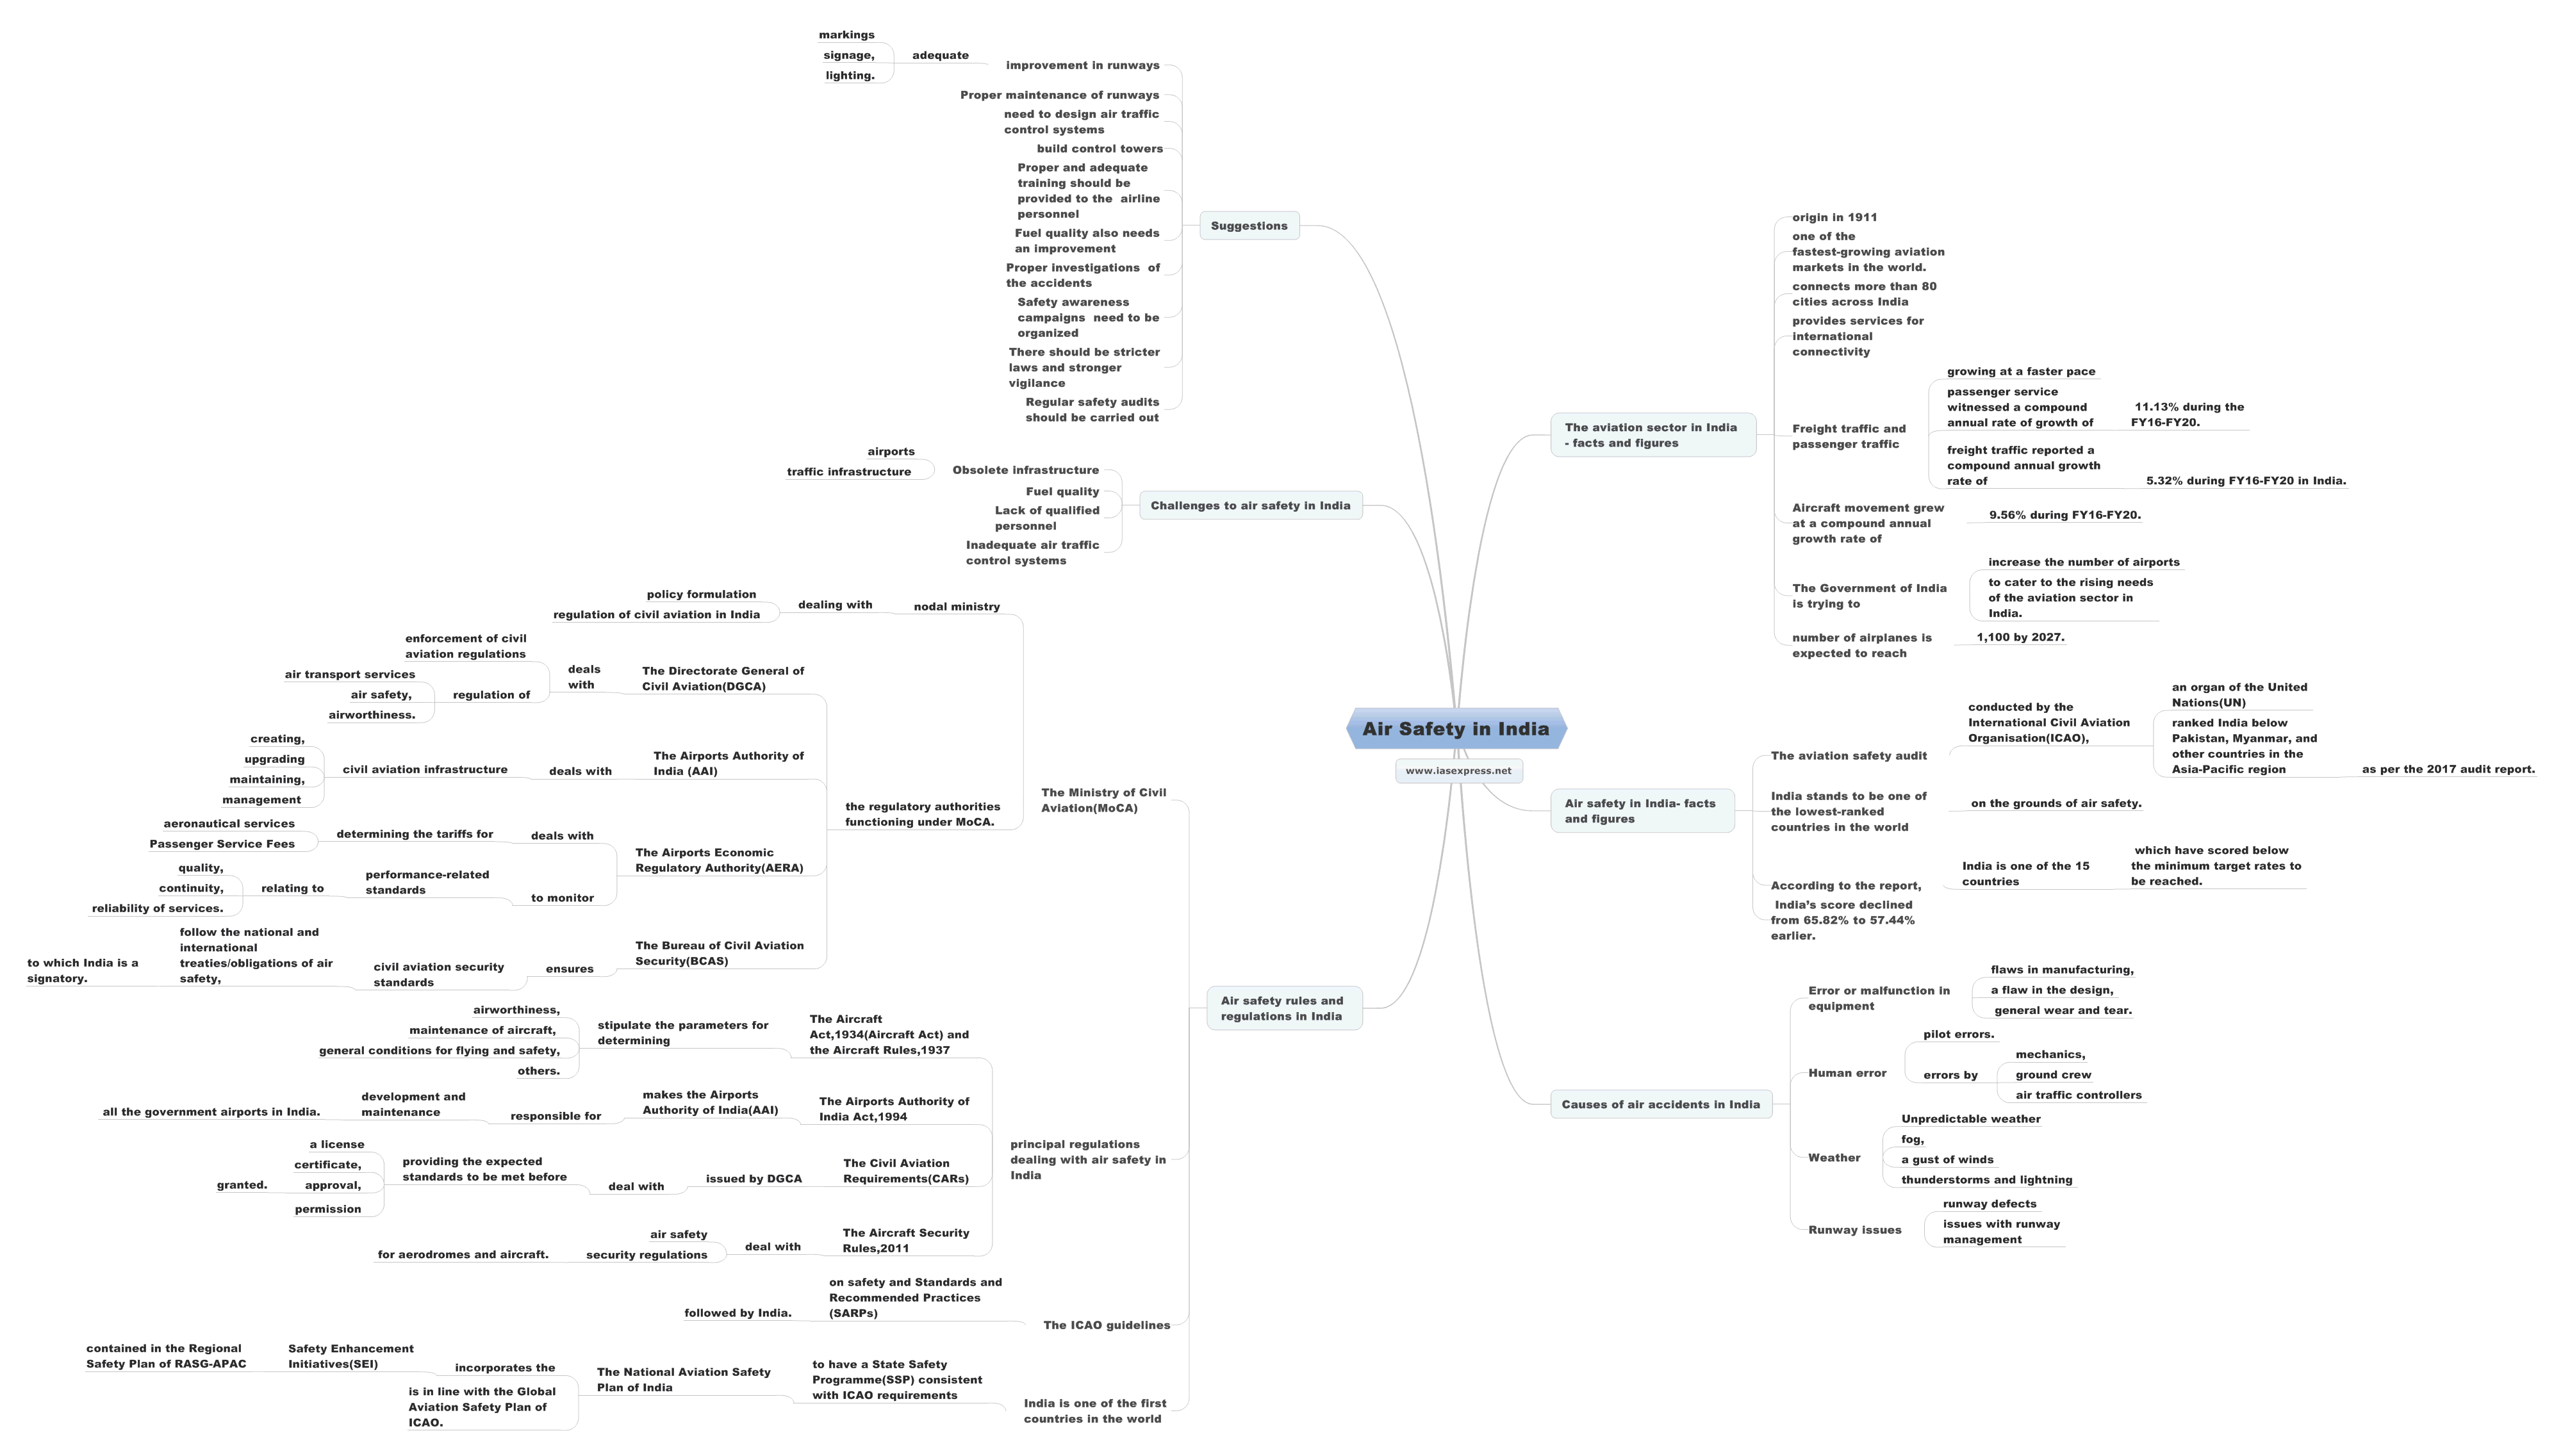 Air-Safety-in-India.mindmap